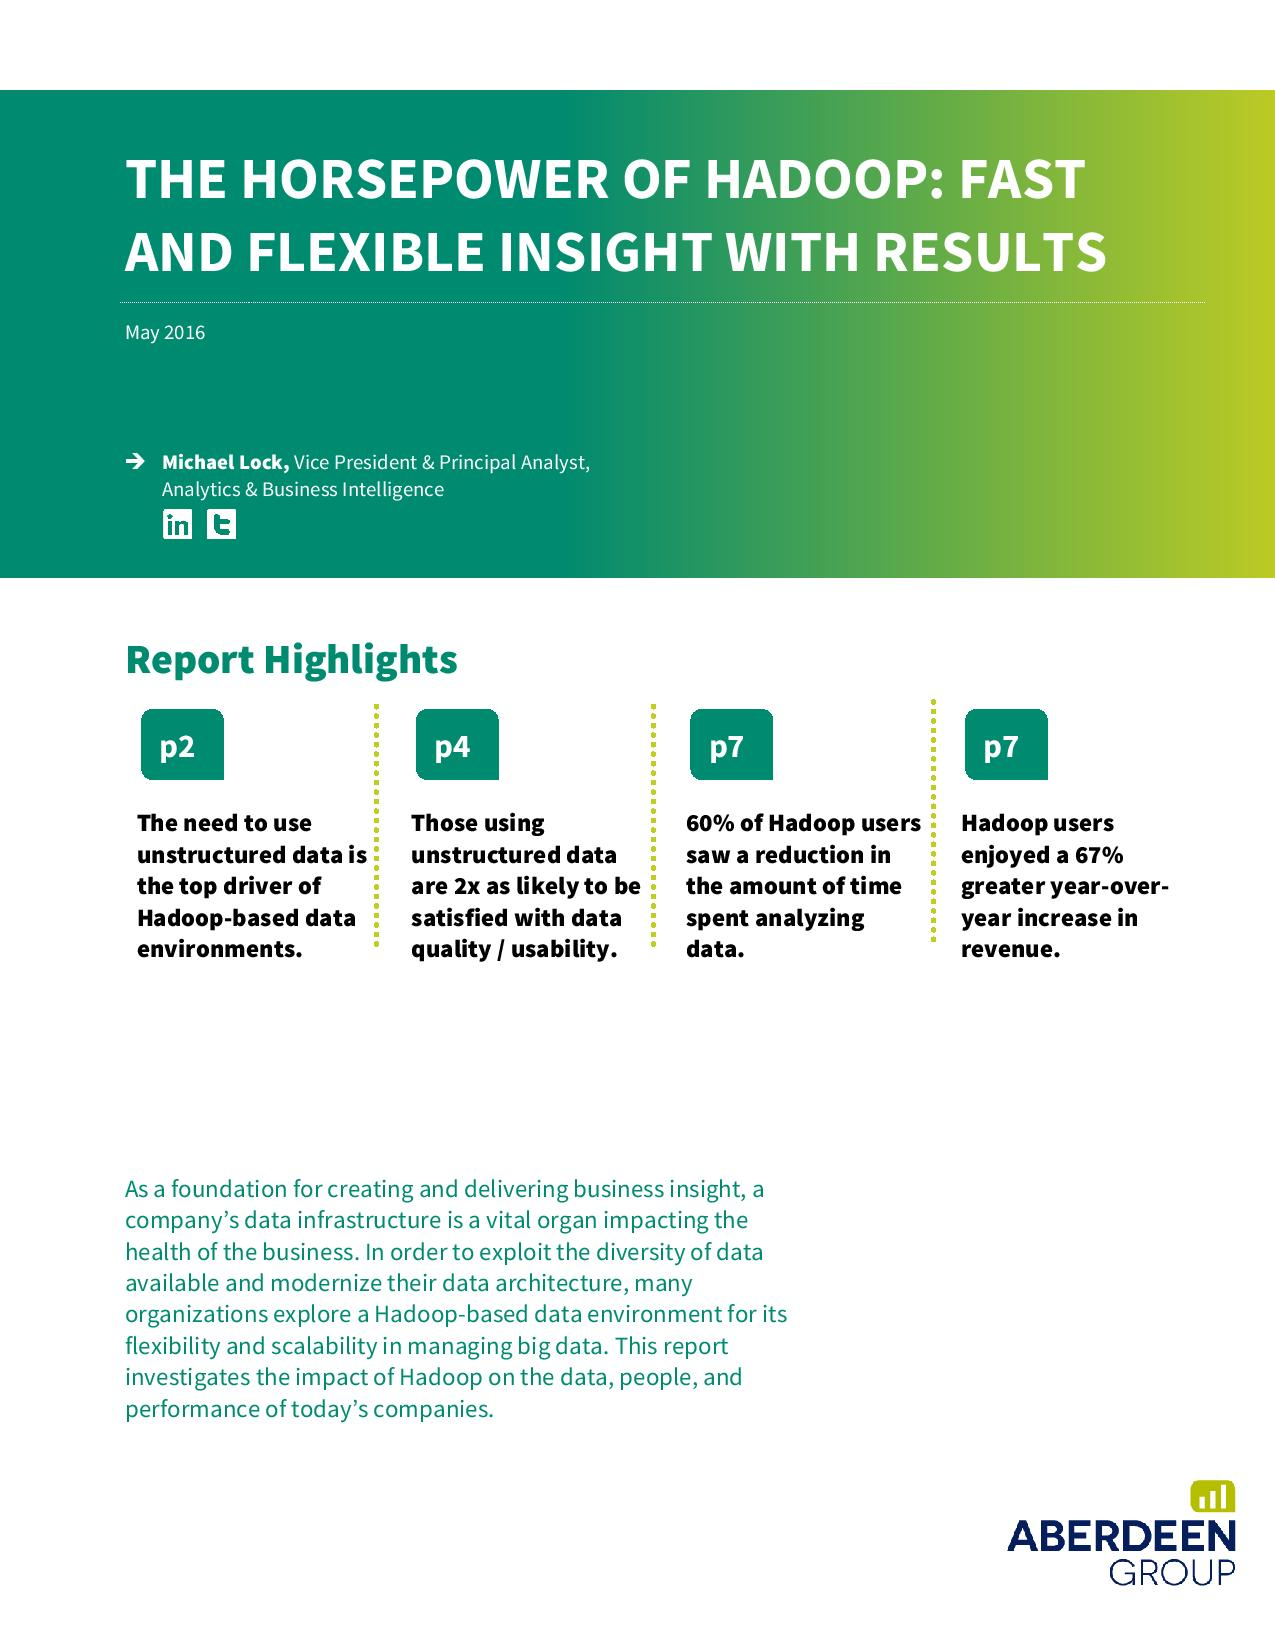 The Horsepower of Hadoop Fast and Flexible Insight with Results (Analyst Report)